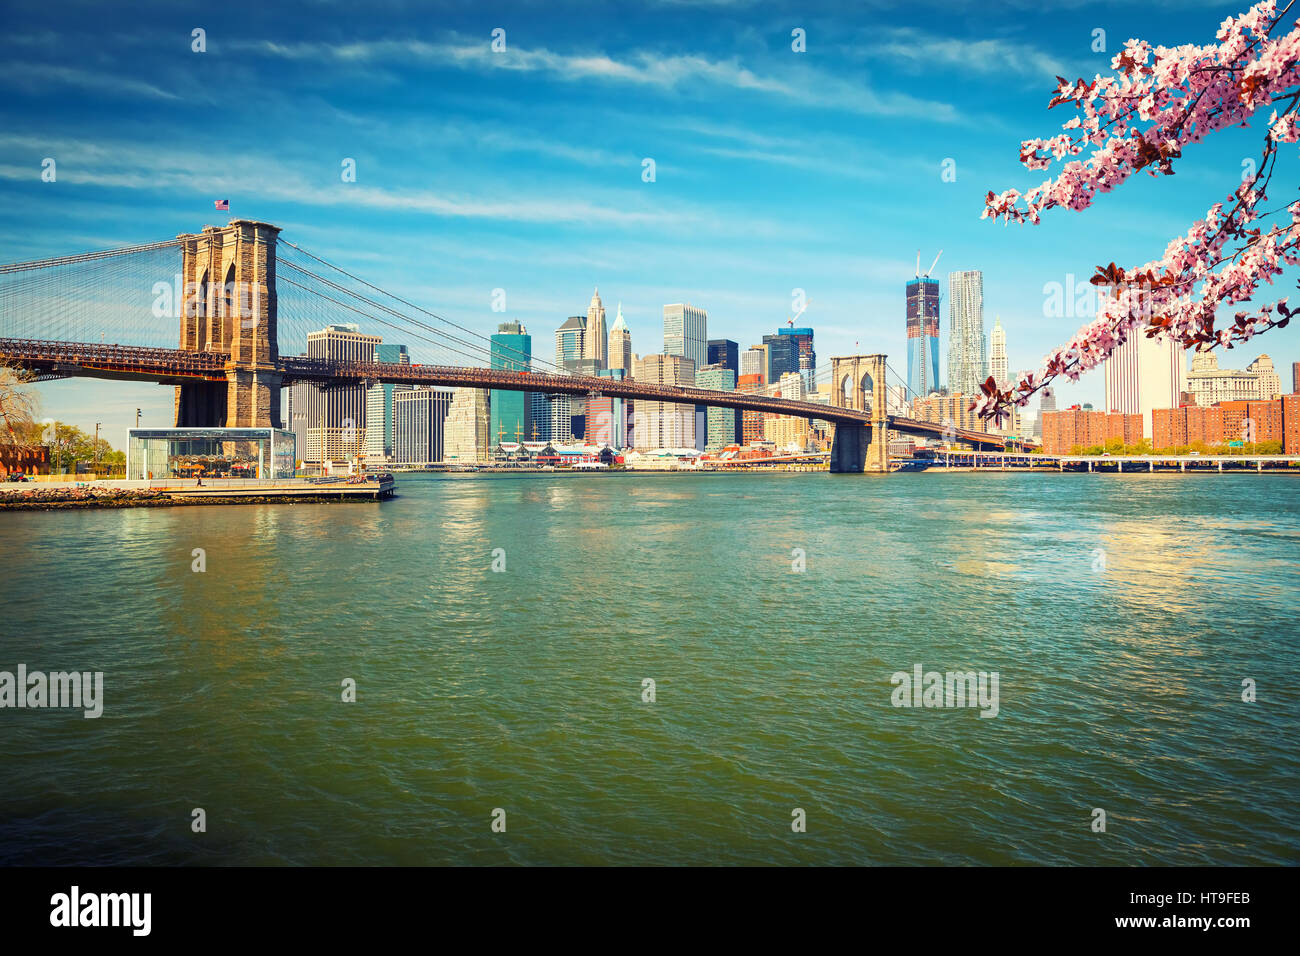 Brooklyn bridge and Manhattan at spring, New York City - Stock Image